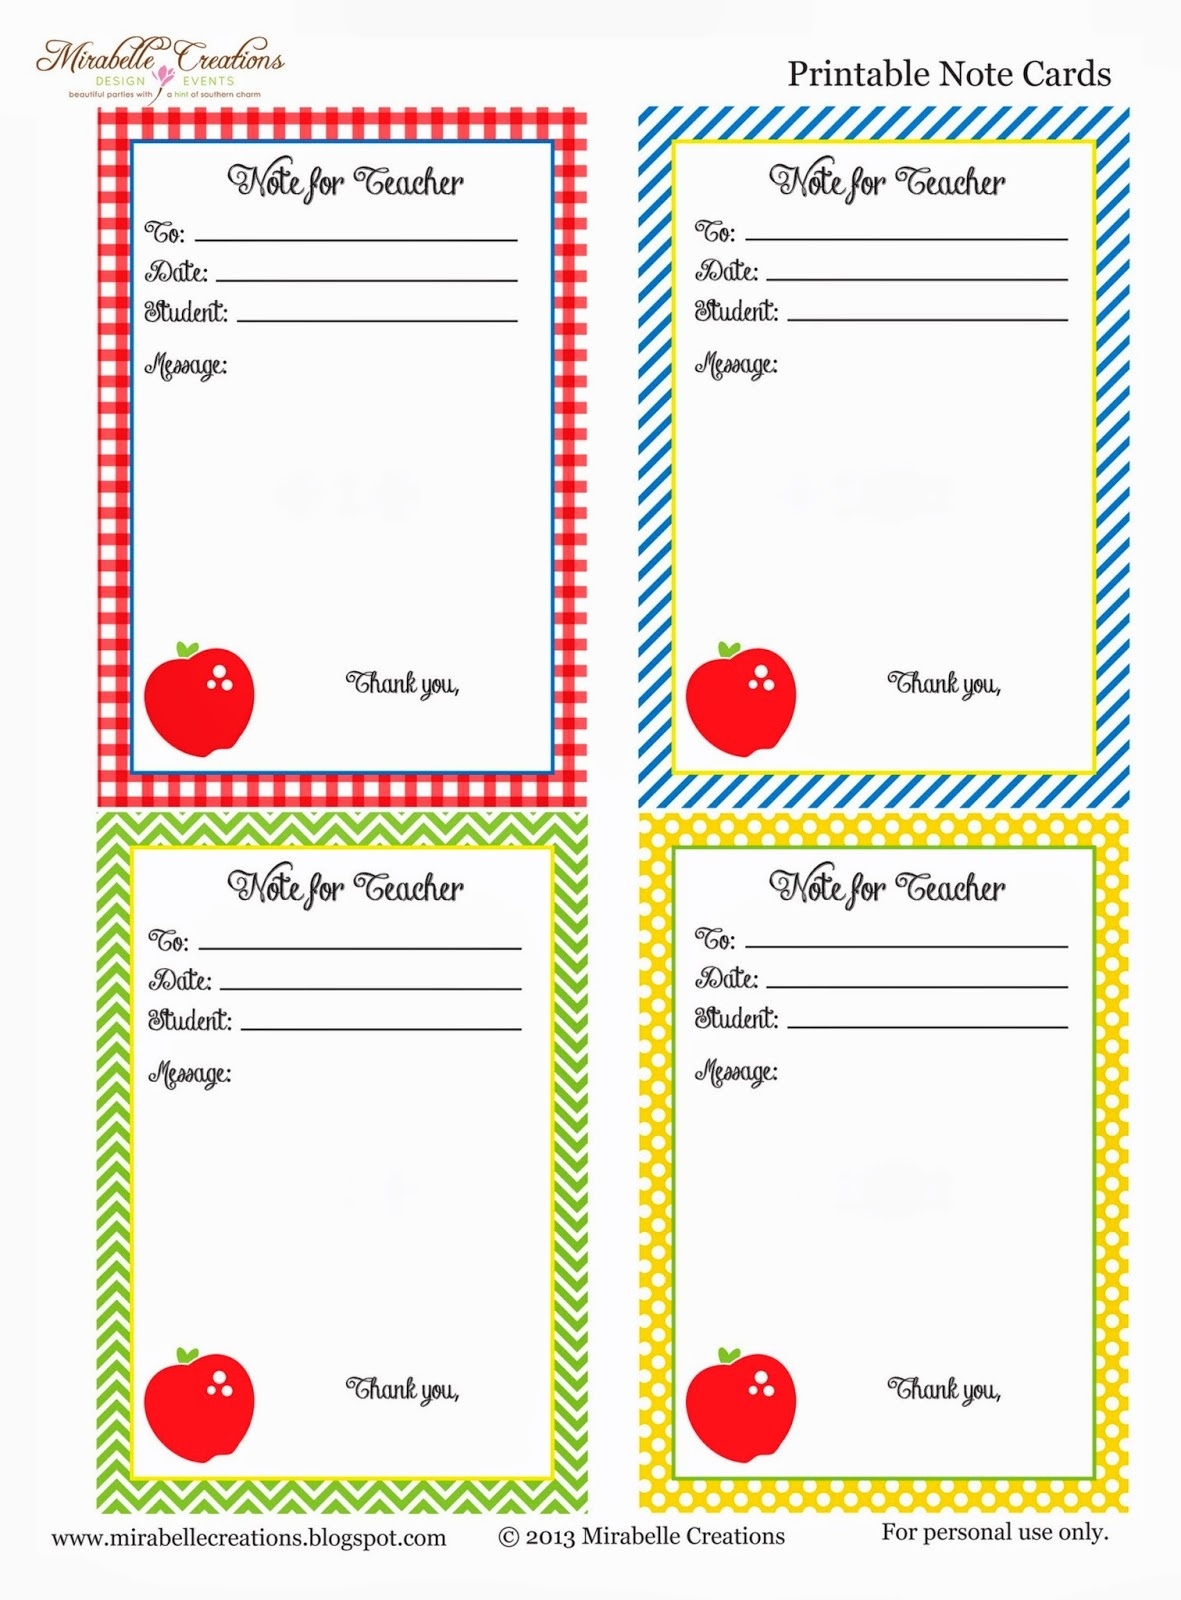 Back To School} - Free Printable Note For Teacher Cards - Mirabelle - Free Printable School Notes